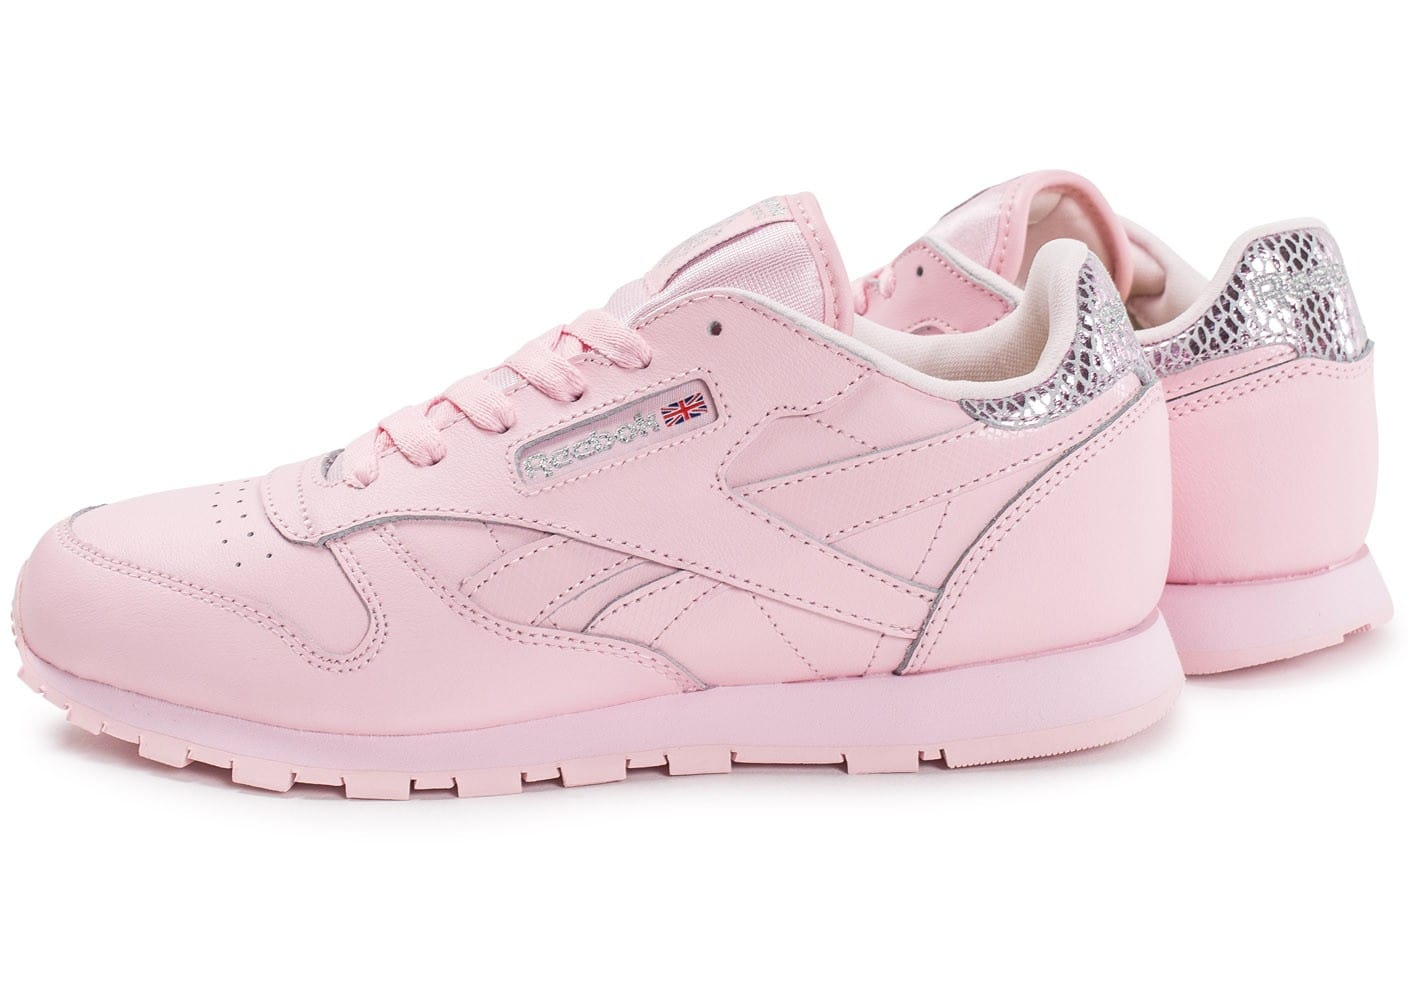 reebok classic leather metallic rose chaussures femme. Black Bedroom Furniture Sets. Home Design Ideas